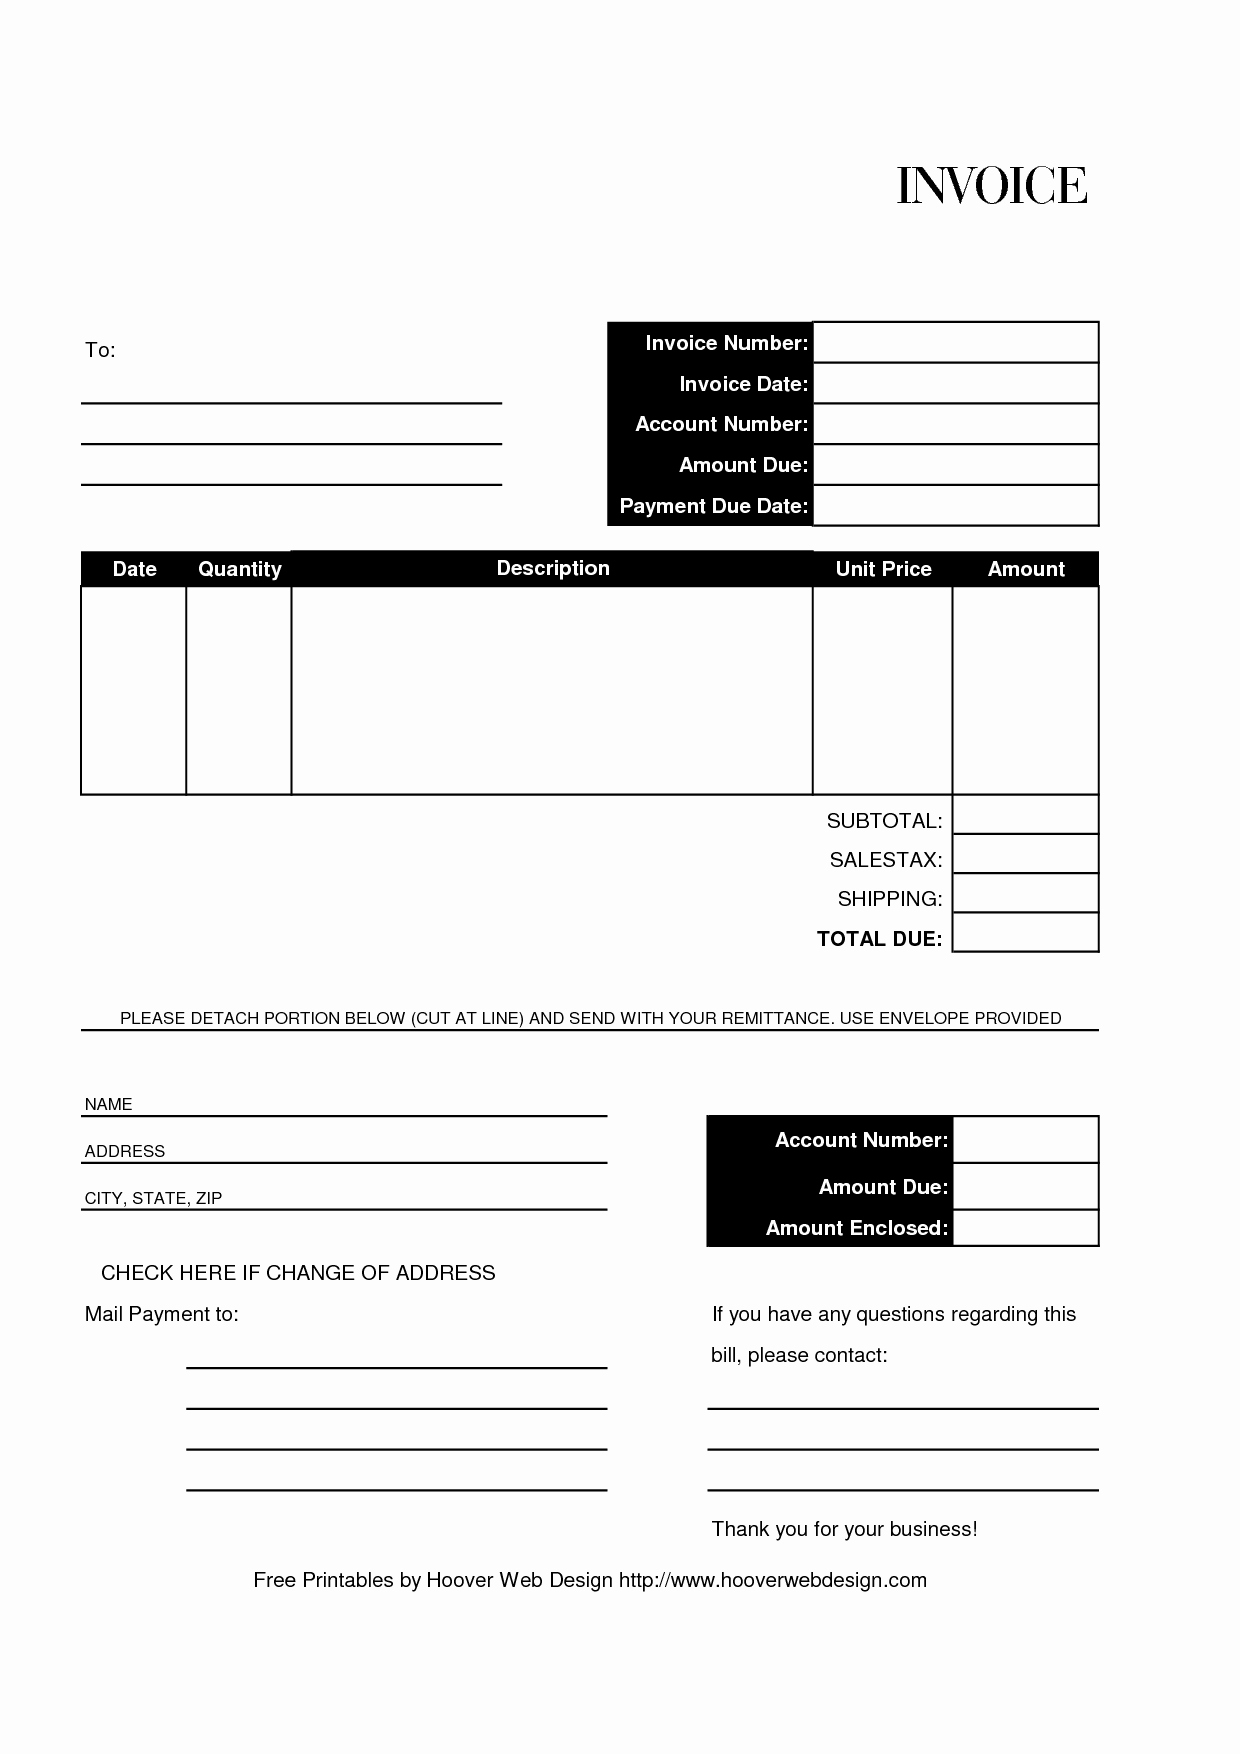 Billing Invoice Template Free Unique Free Editable and Printable Billing Invoice Template